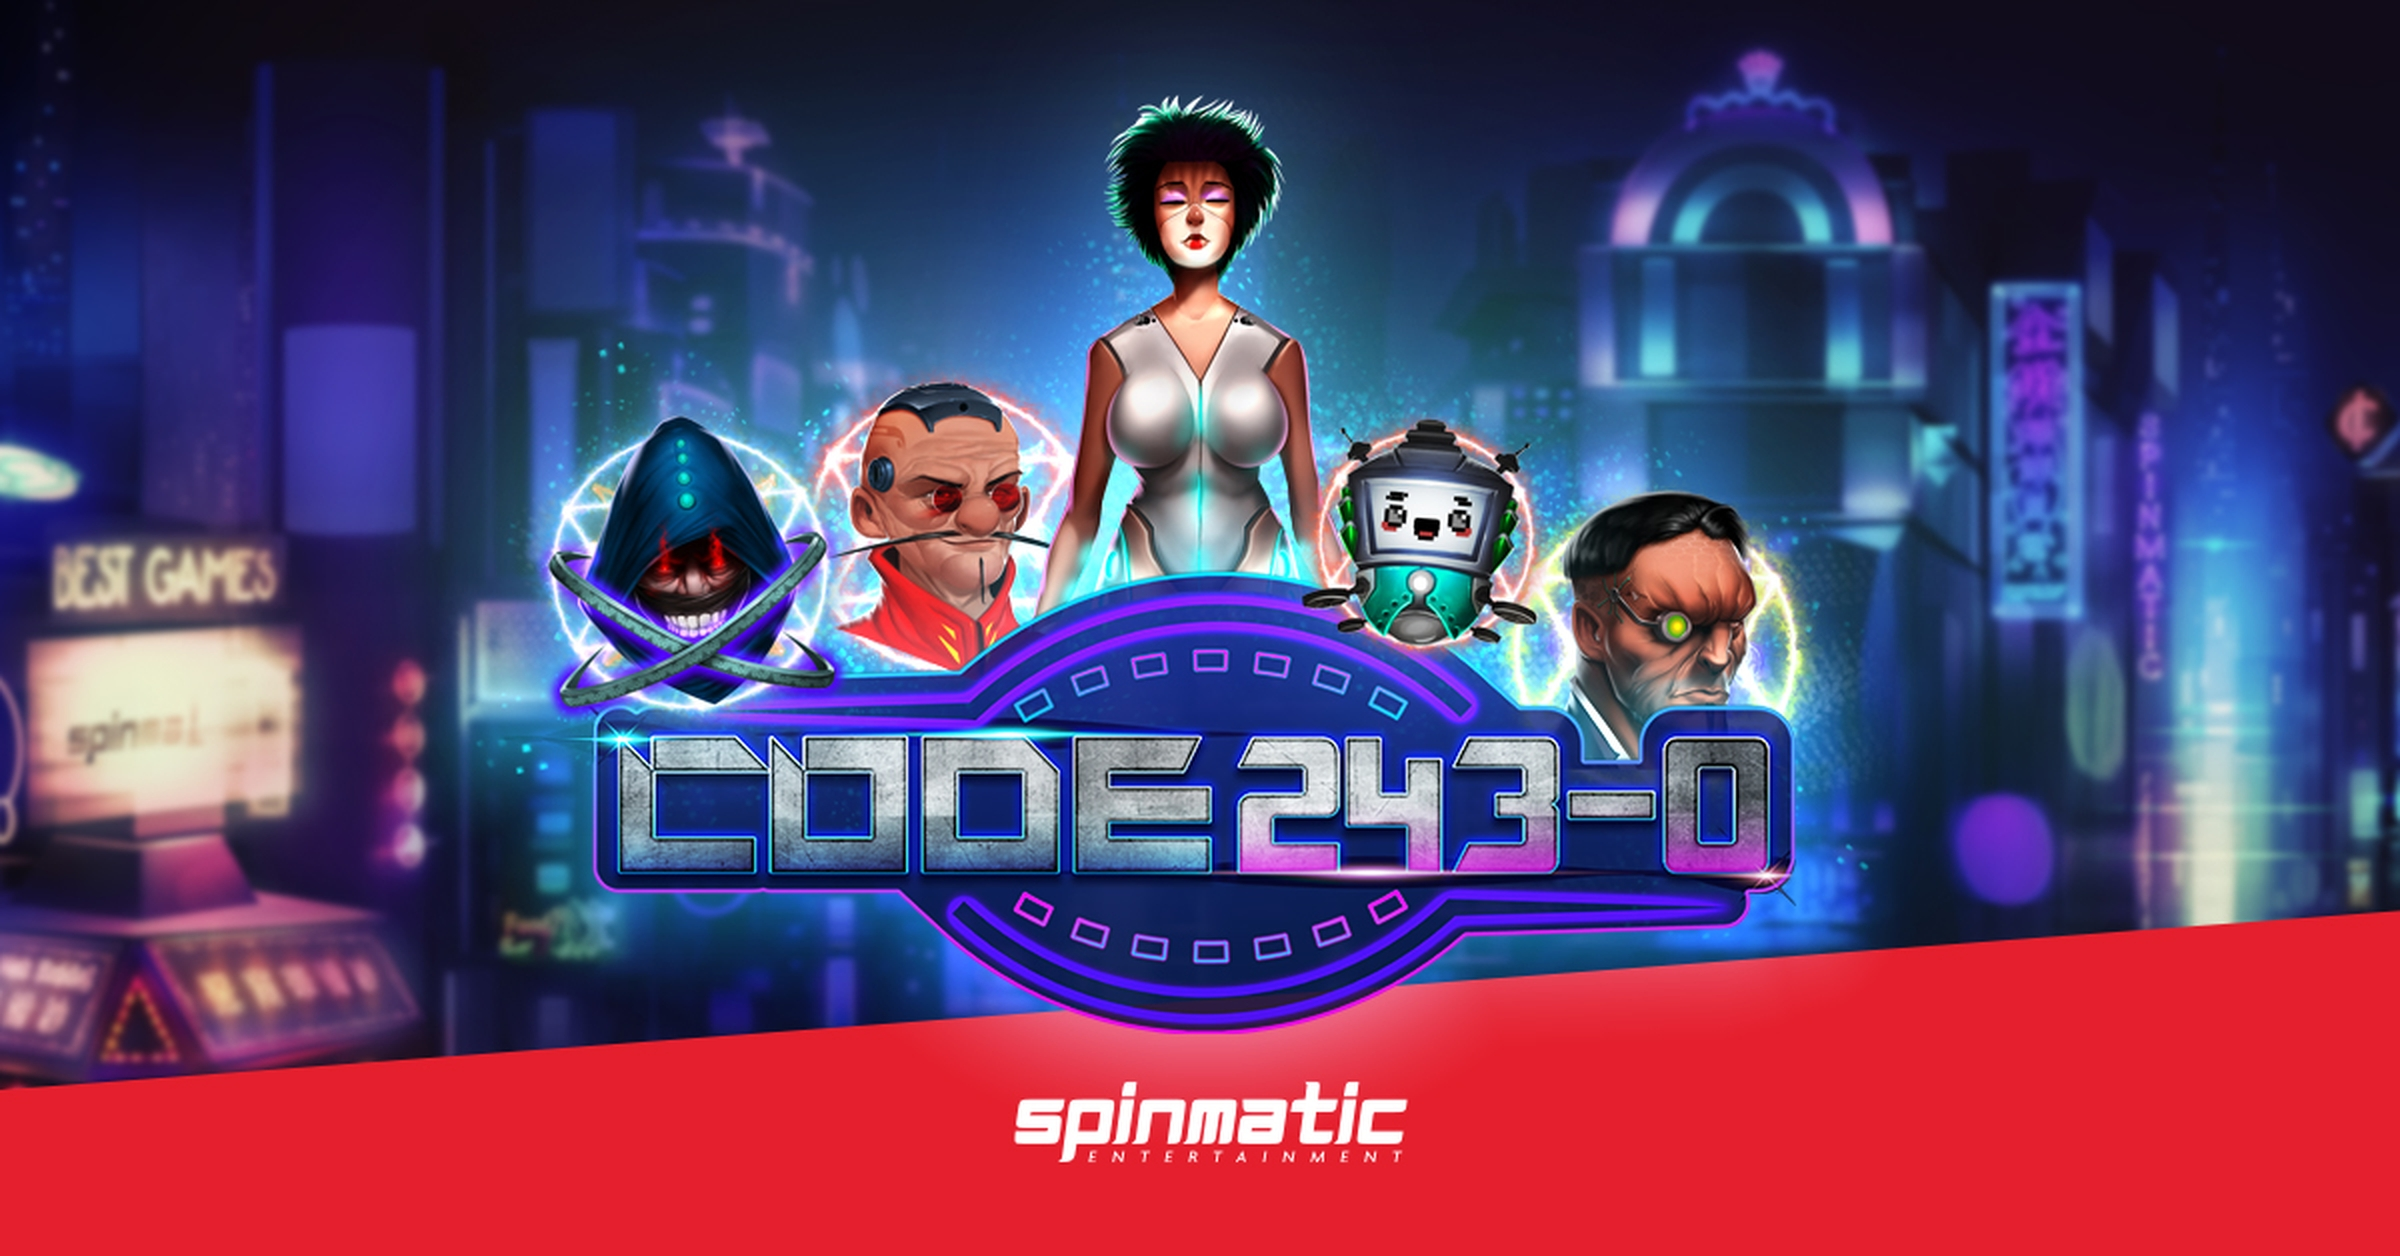 The Code 243-0 Online Slot Demo Game by Spinmatic